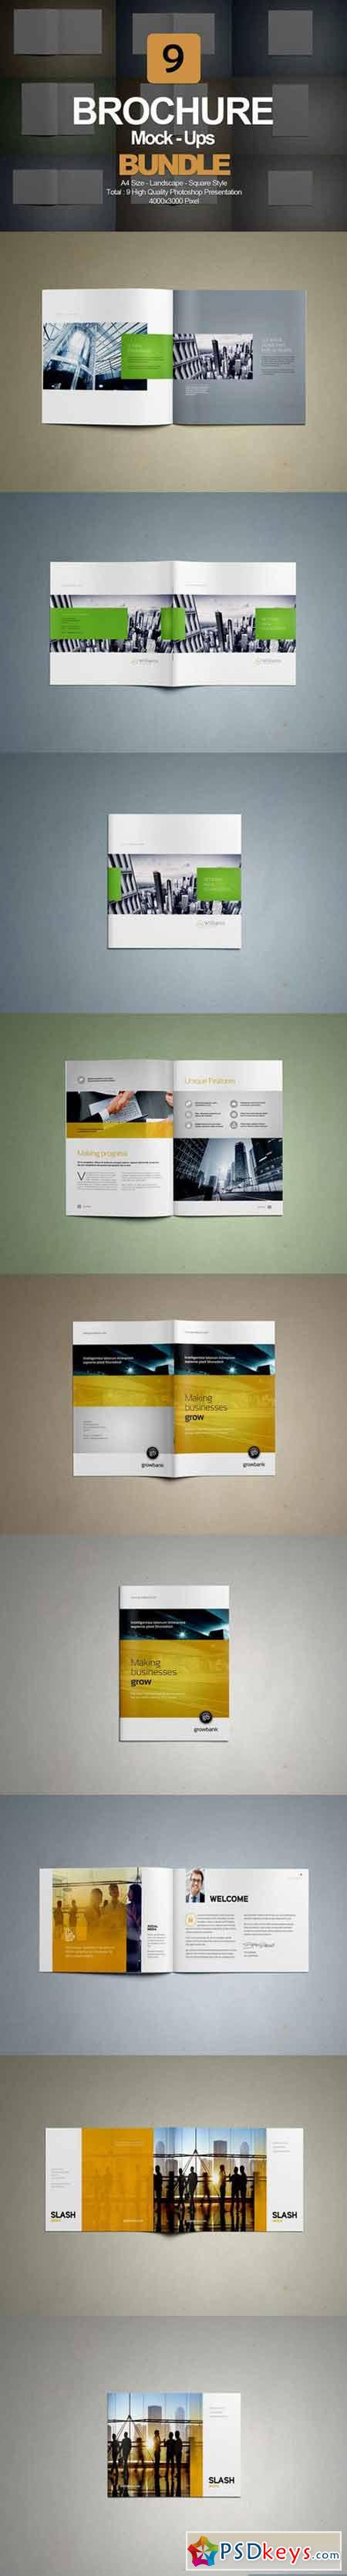 Brochure Mock- Up Bundle 9 in 1 416402